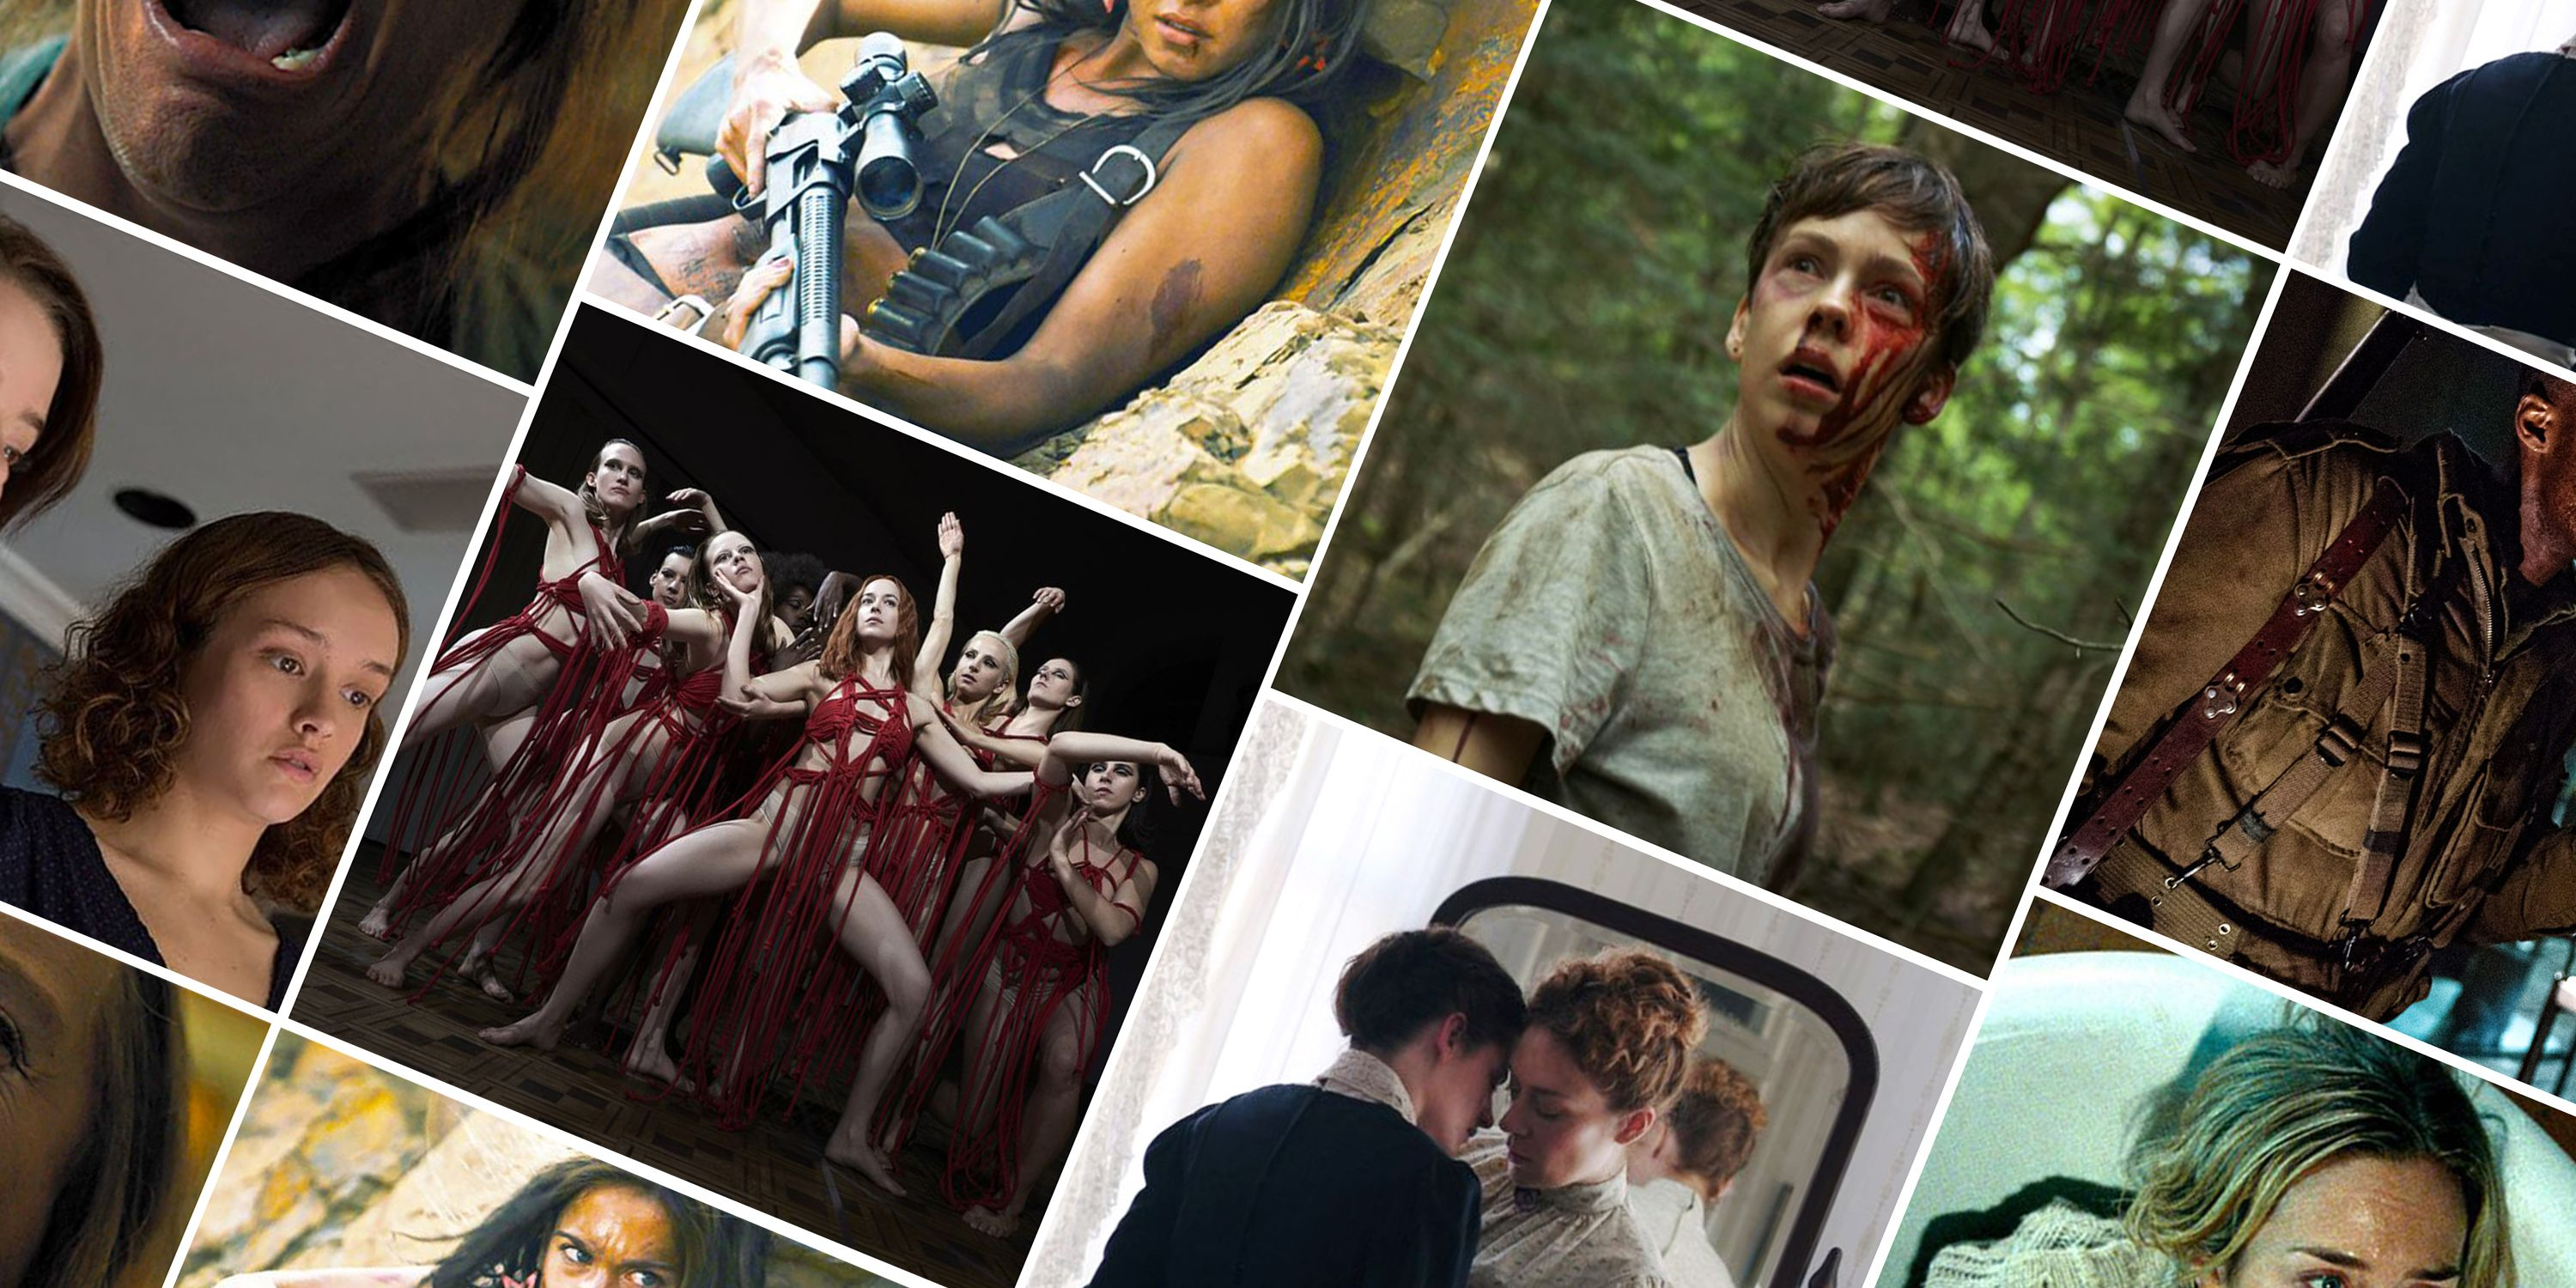 Best of photos 2020 movie hollywood horror thriller